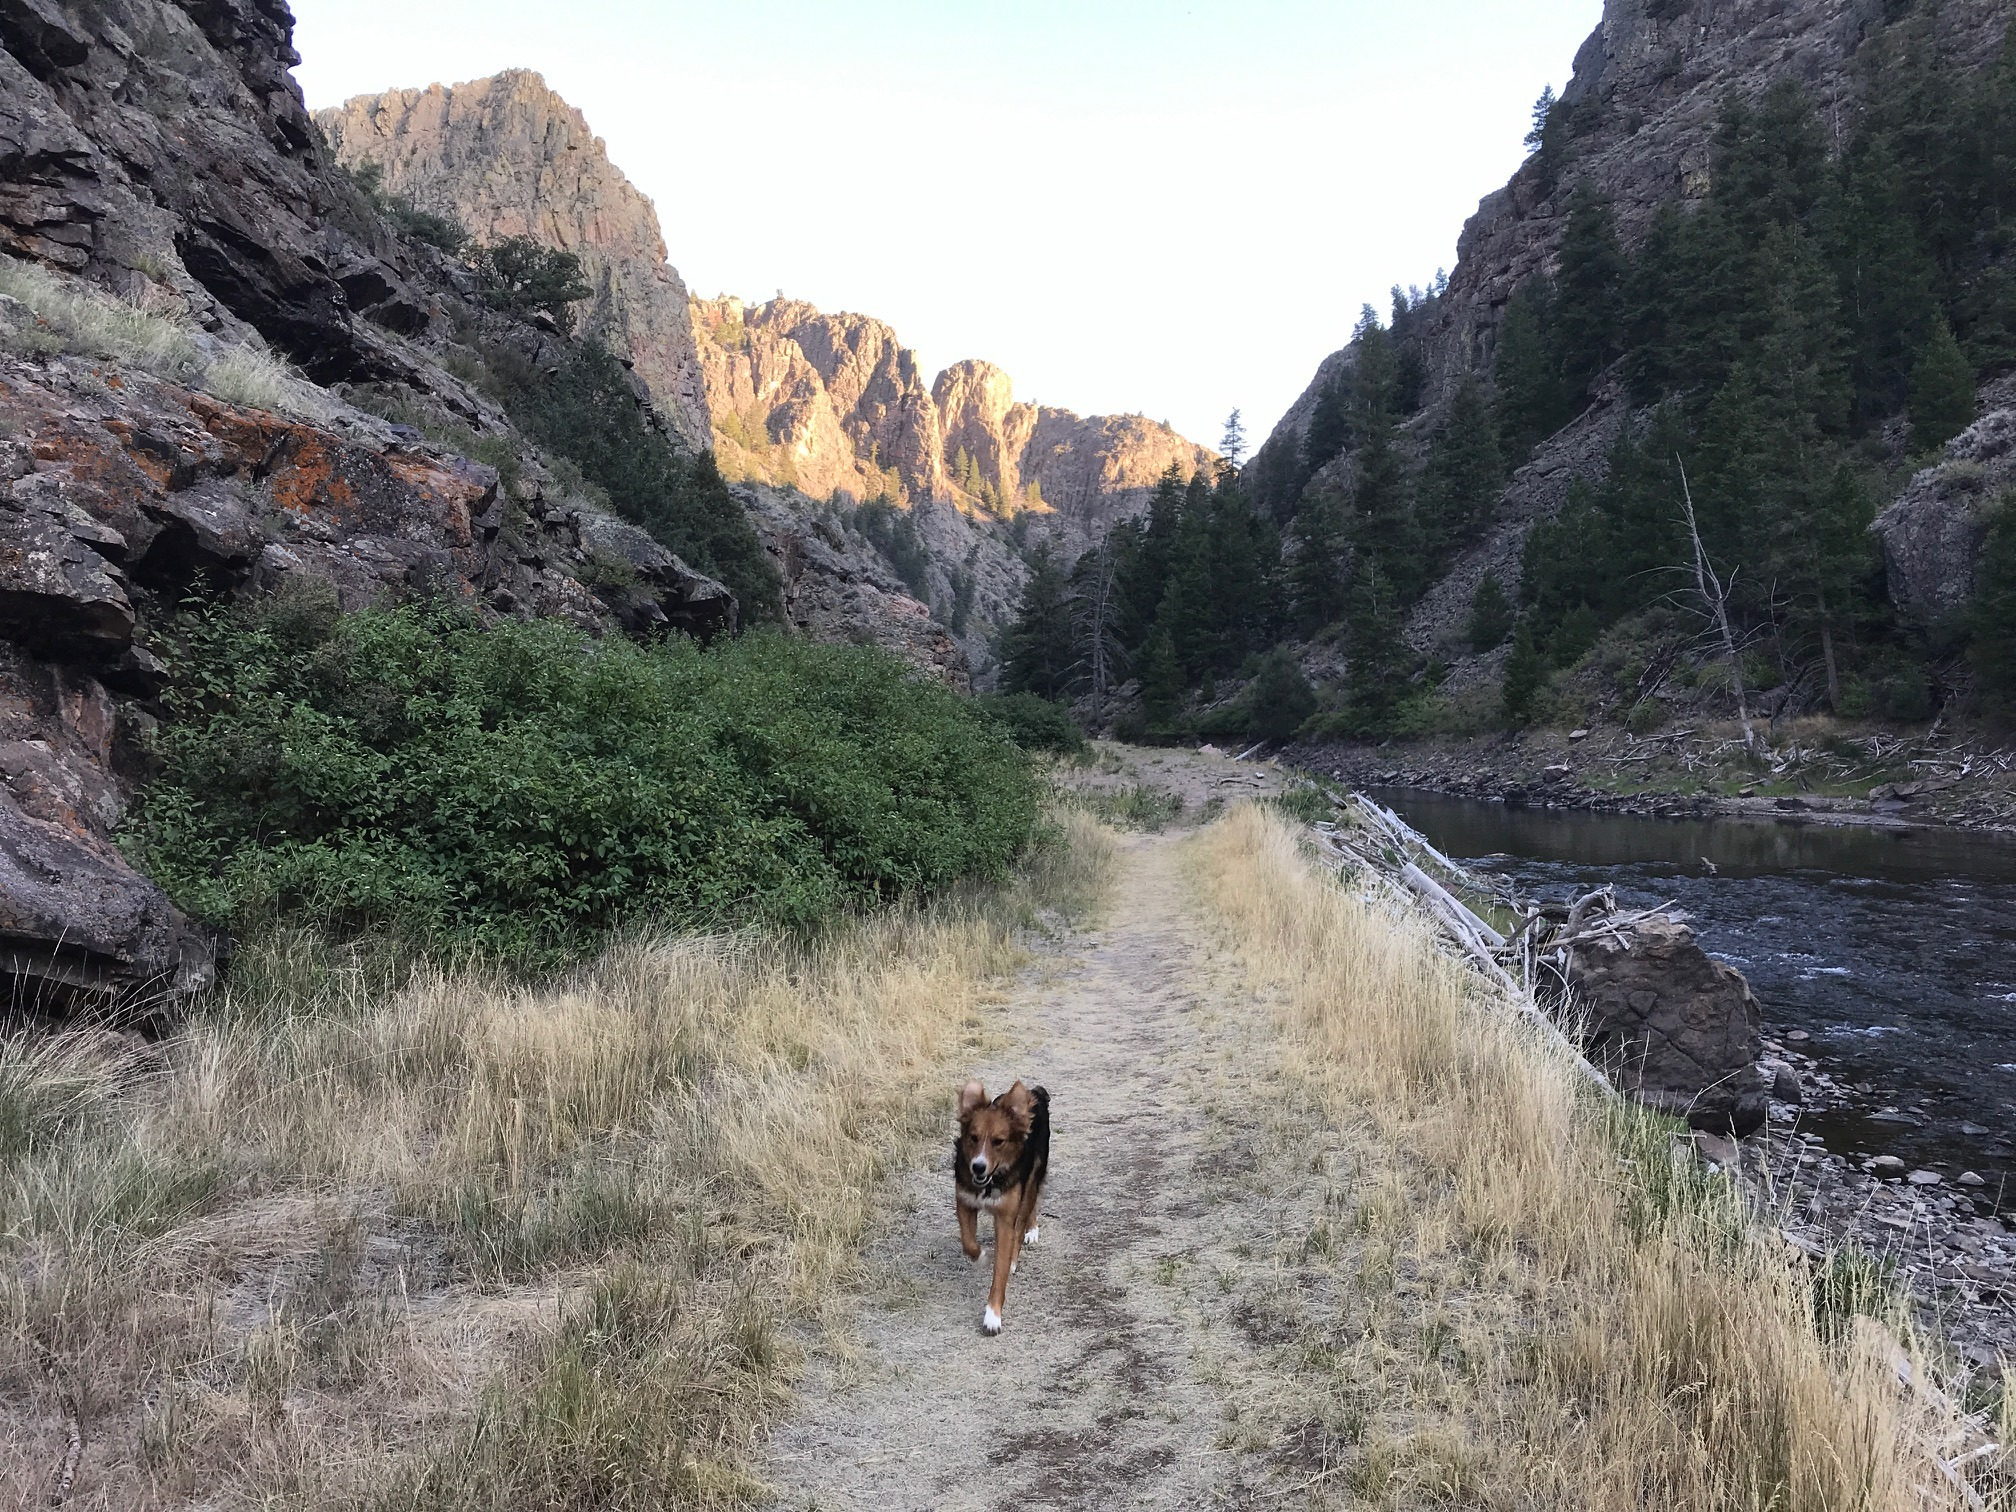 A dog runs along a trail next to a river in a canyon.